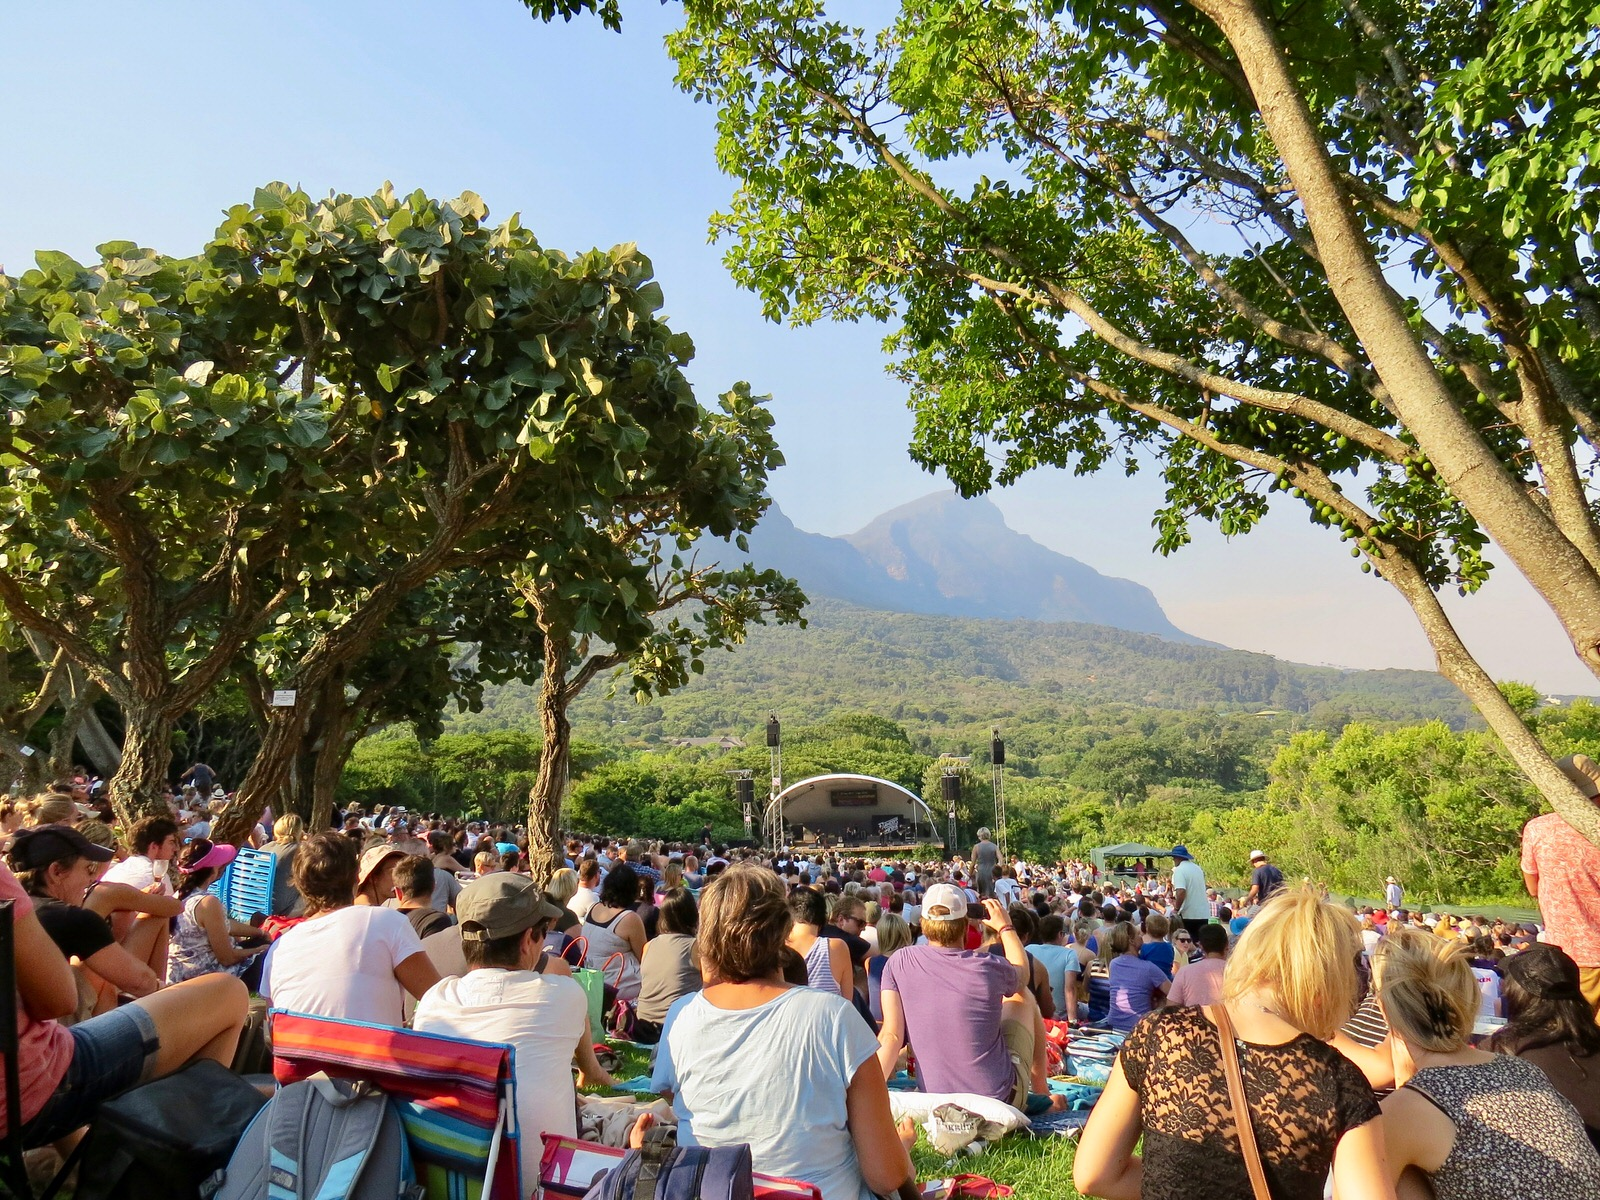 Summer concert at Kistenbosch Cape Town